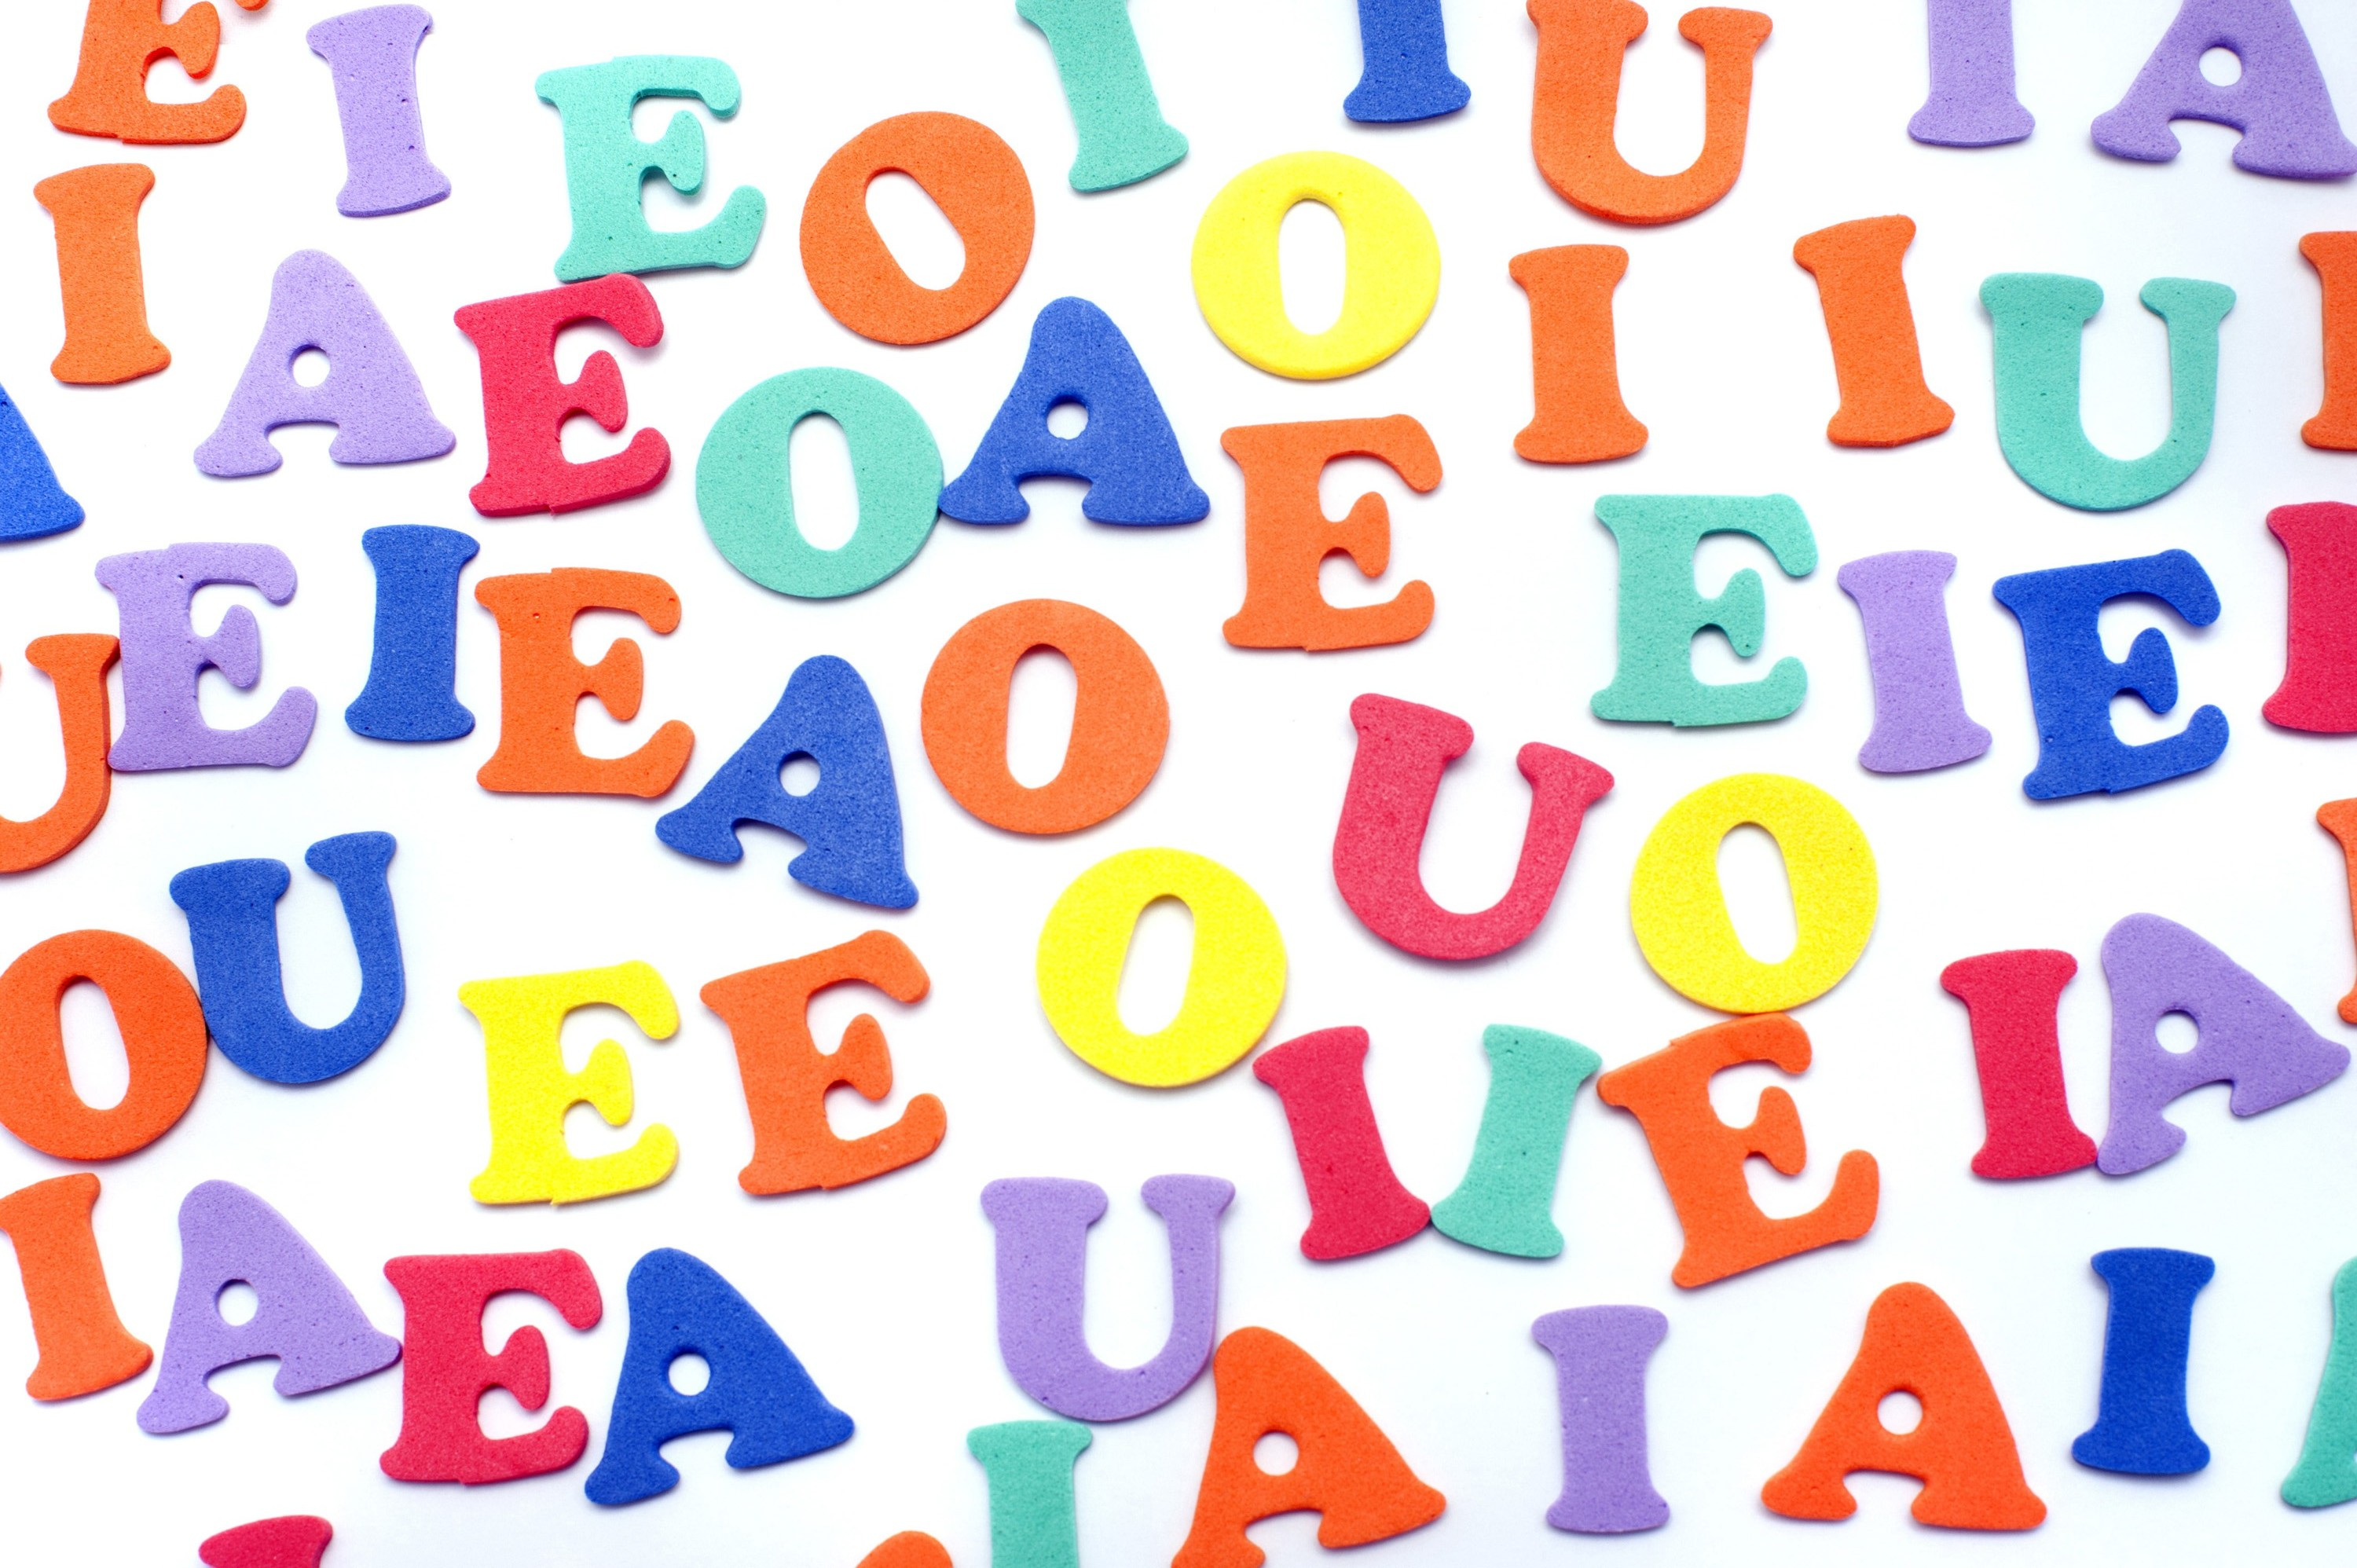 Free image of Colourful random vowels